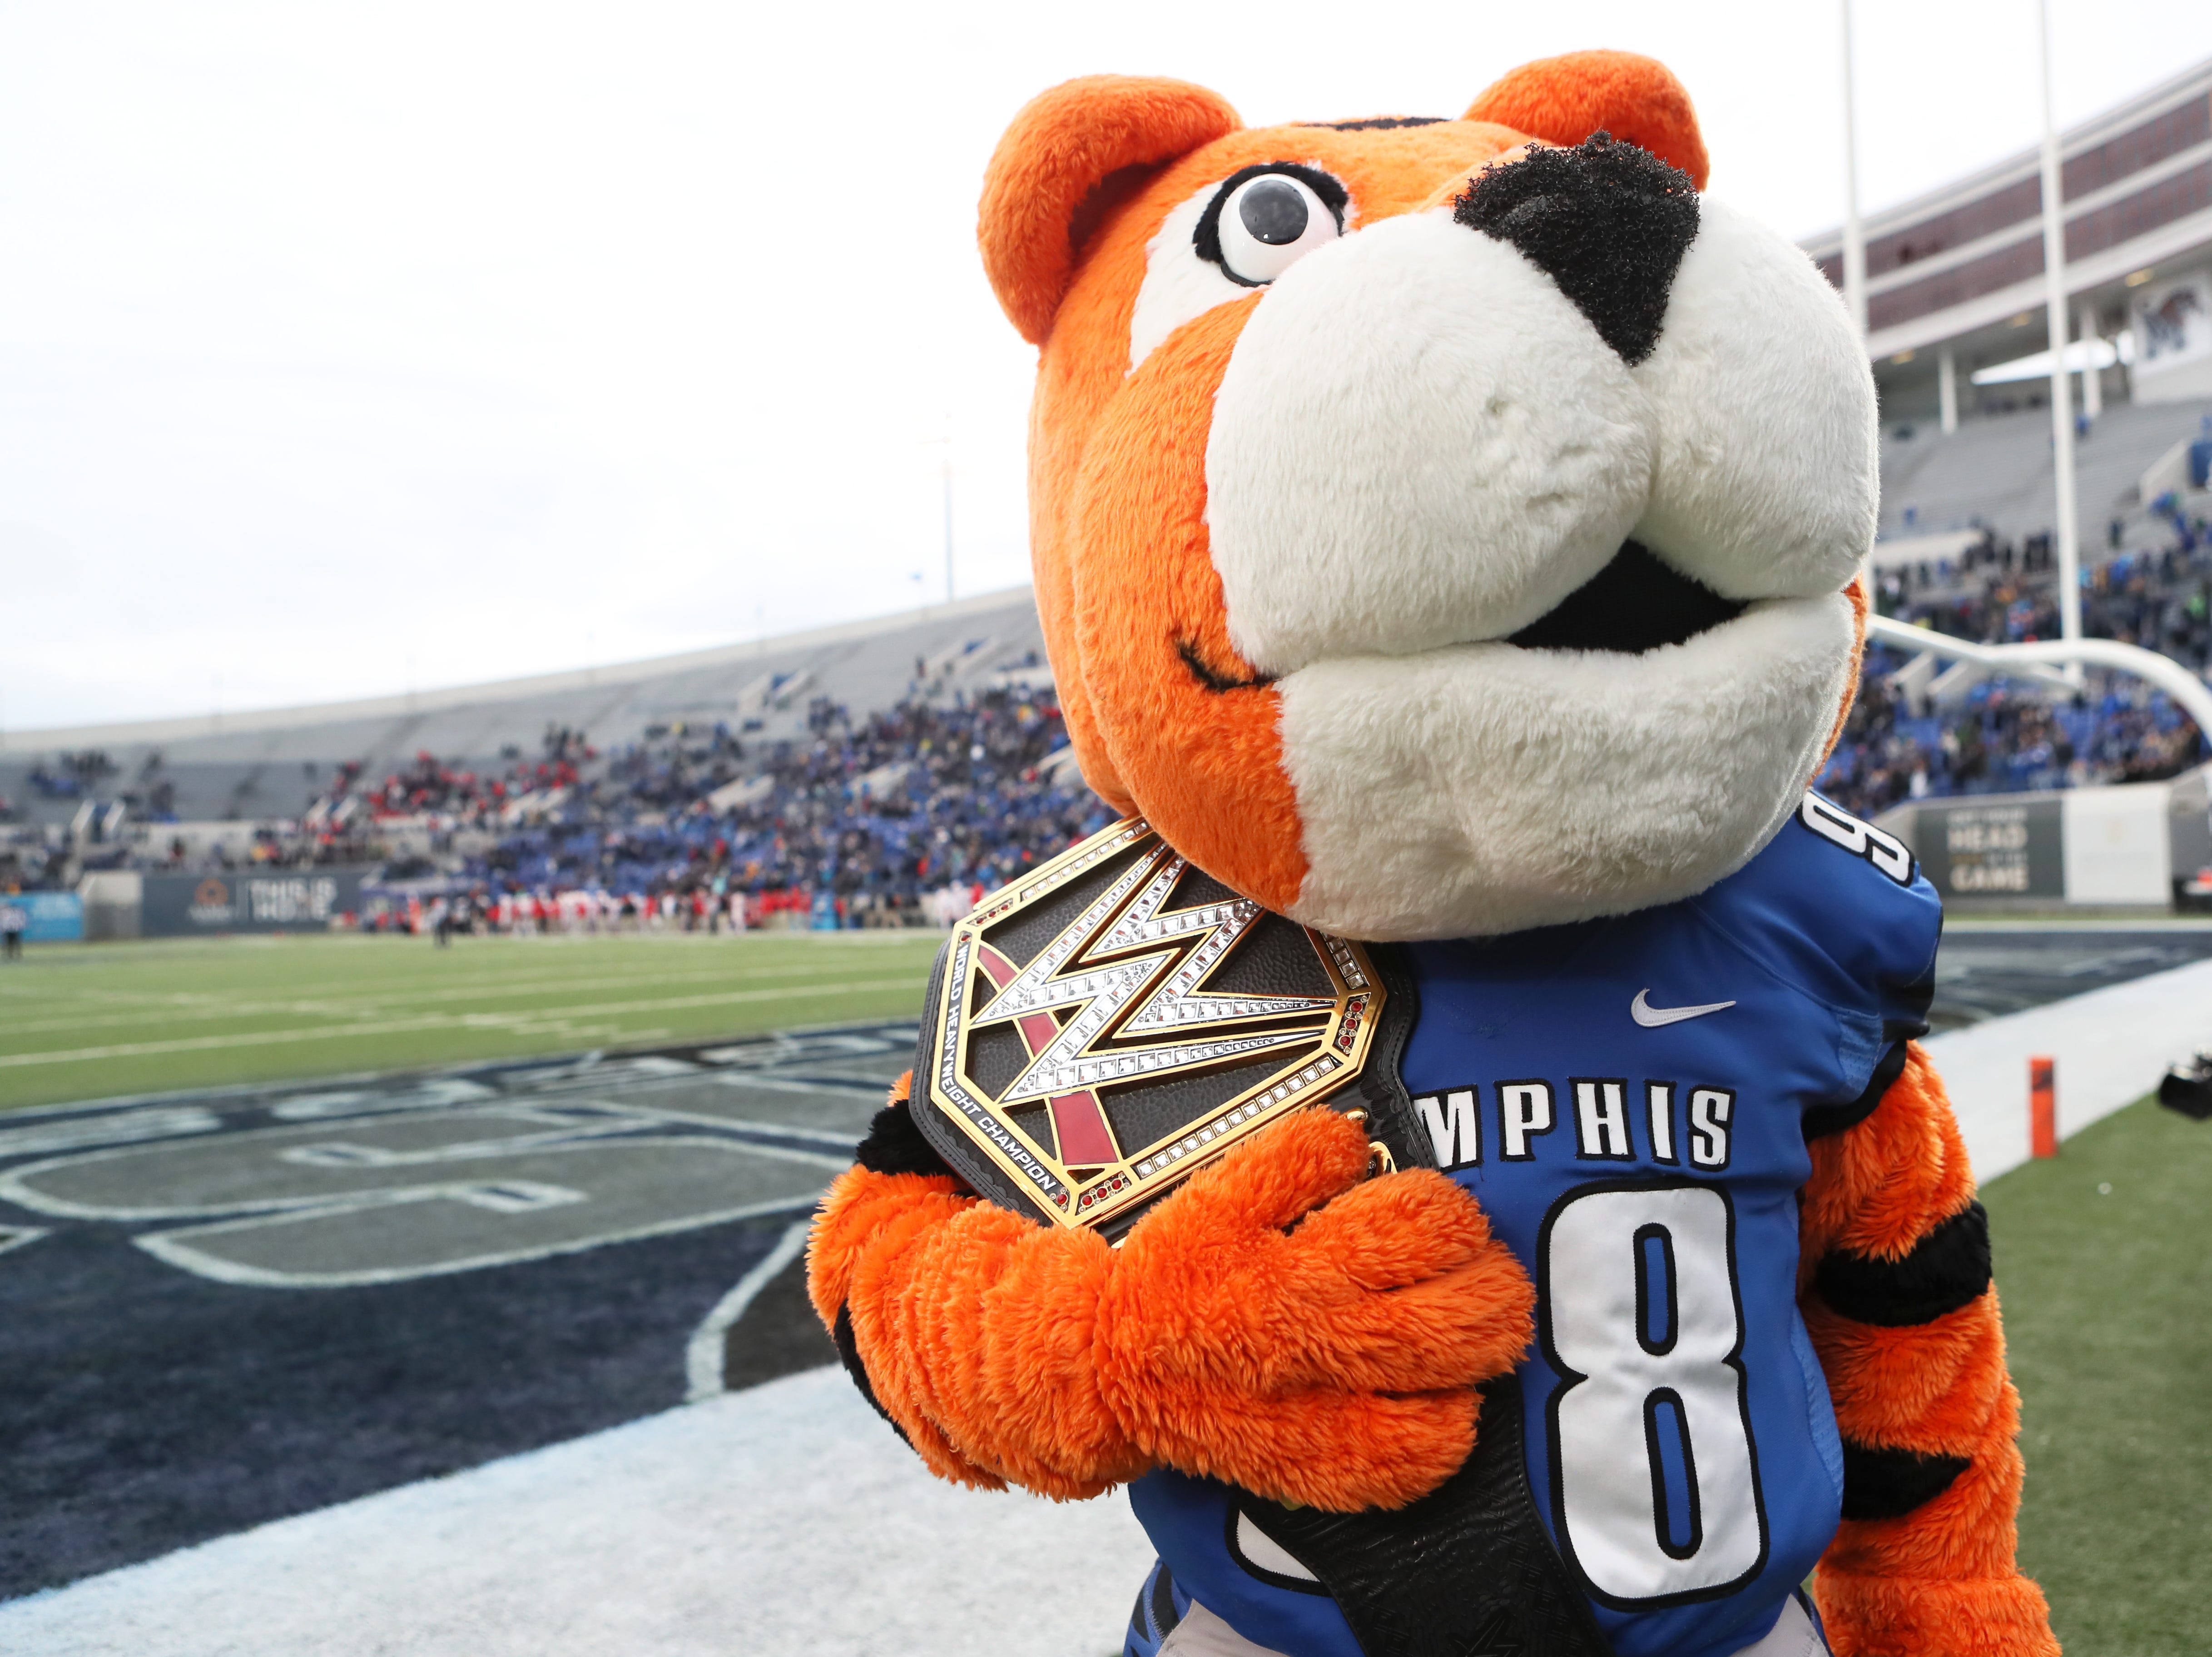 Pouncer holds the title belt as Memphis wins against the Houston Cougars taking the AAC West title 52-31 at the Liberty Bowl on Friday, Nov. 23, 2018.